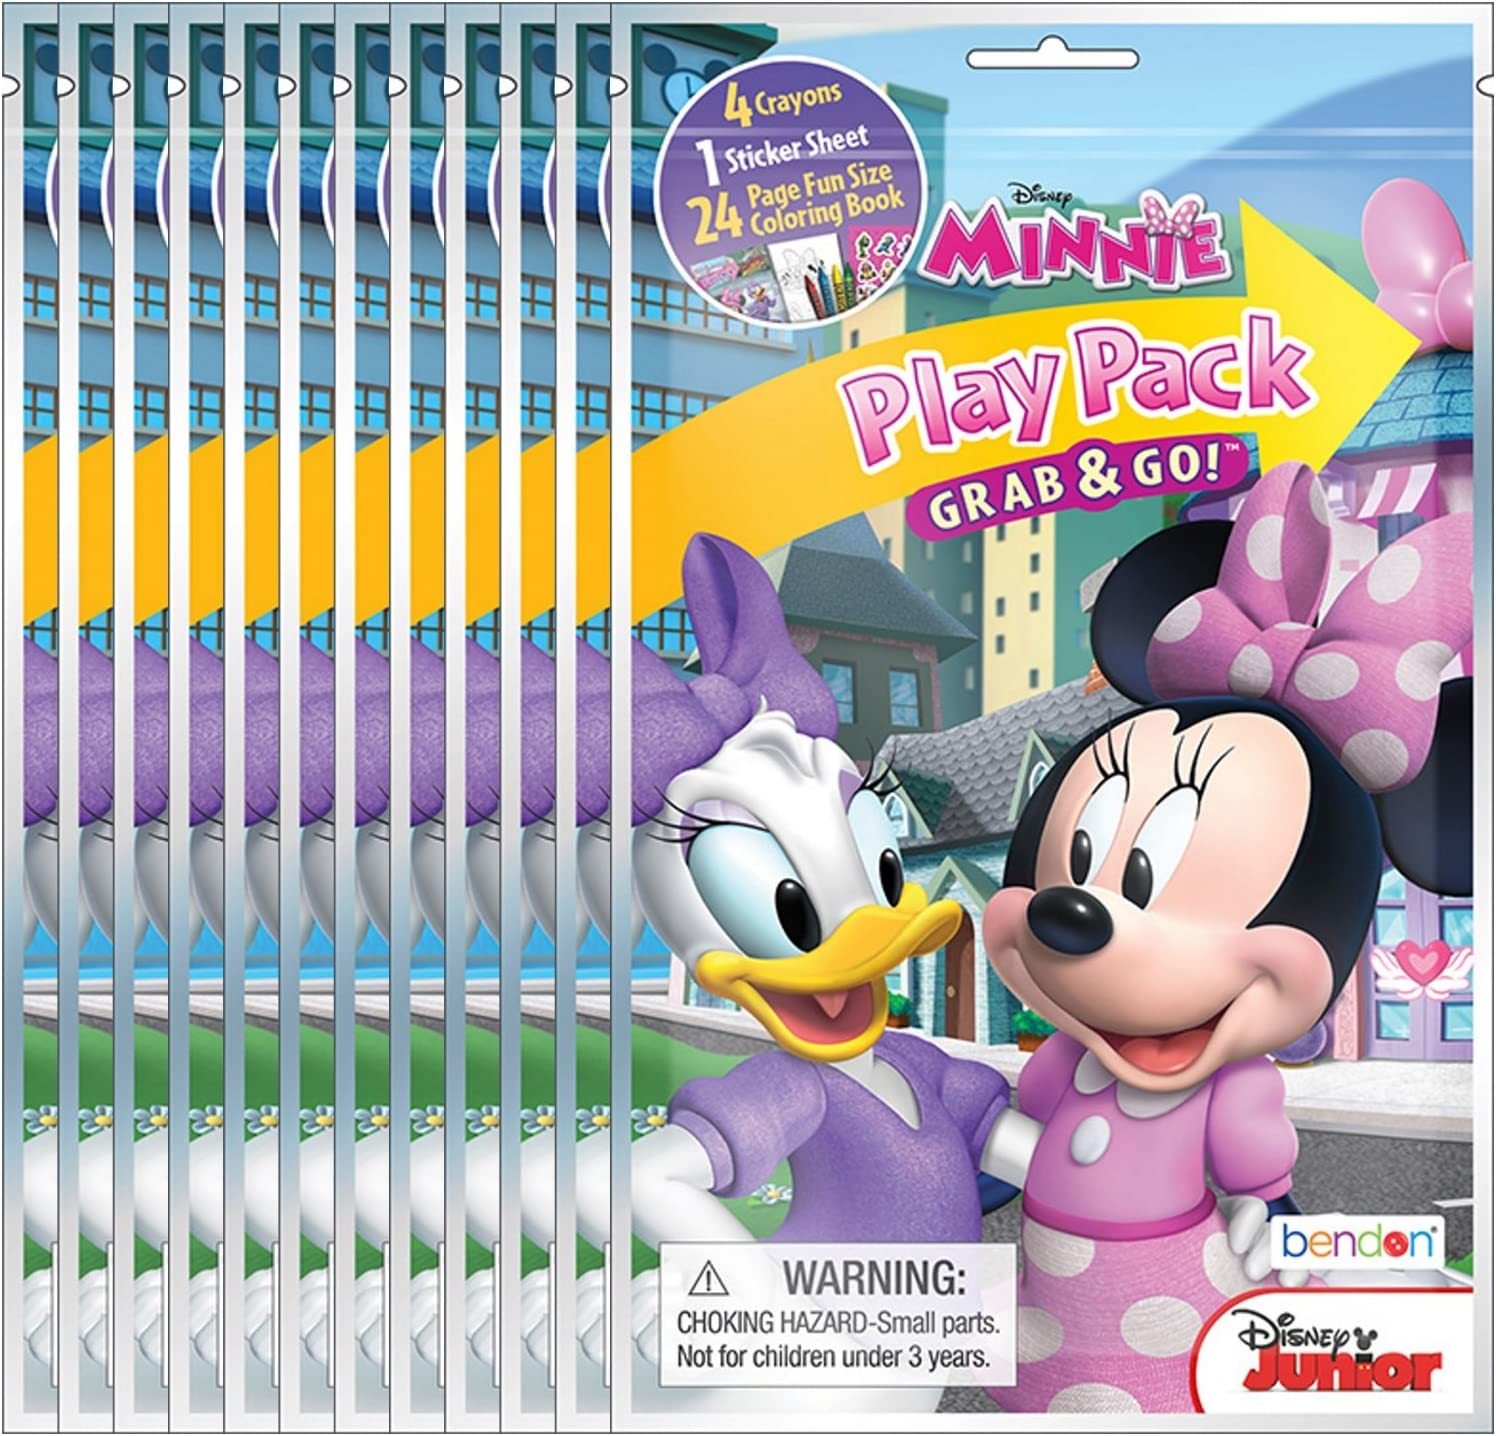 Bendon Disney Minnie Mouse Grab and Go Play Packs Pack of 12